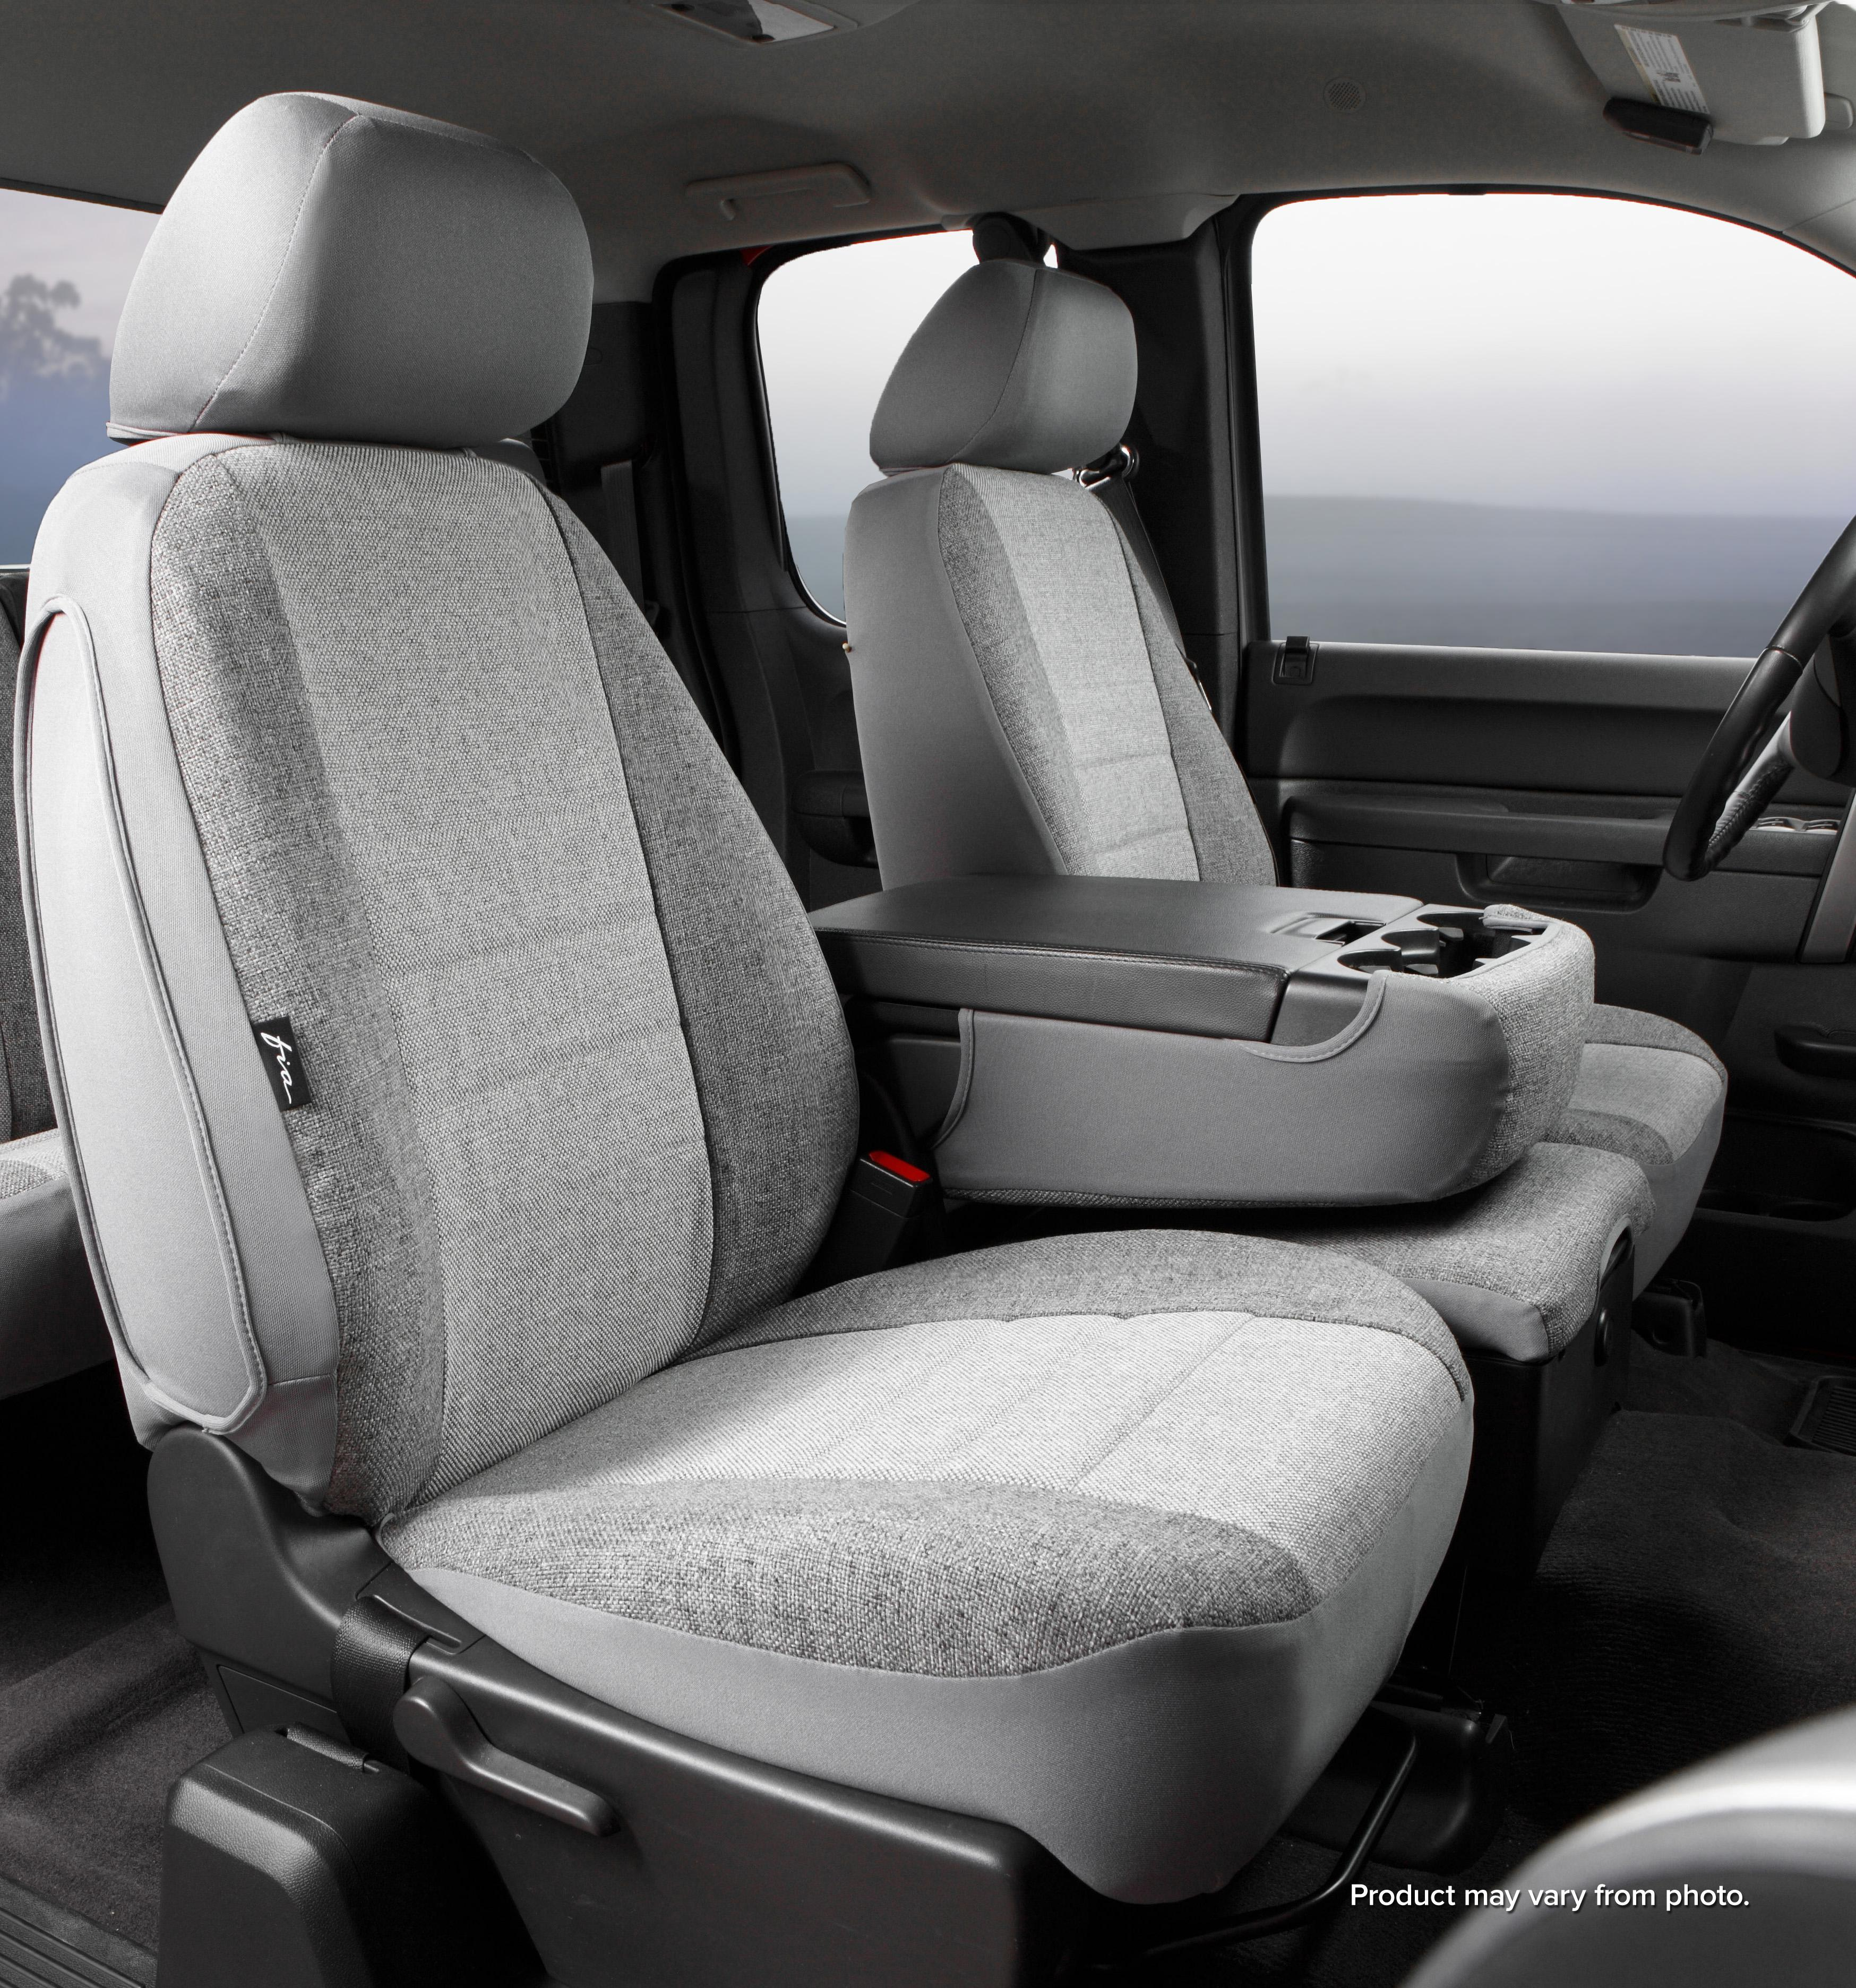 Fia TR47-65 GRAY Custom Fit Front Seat Cover Bucket Seats Gray Saddle Blanket,